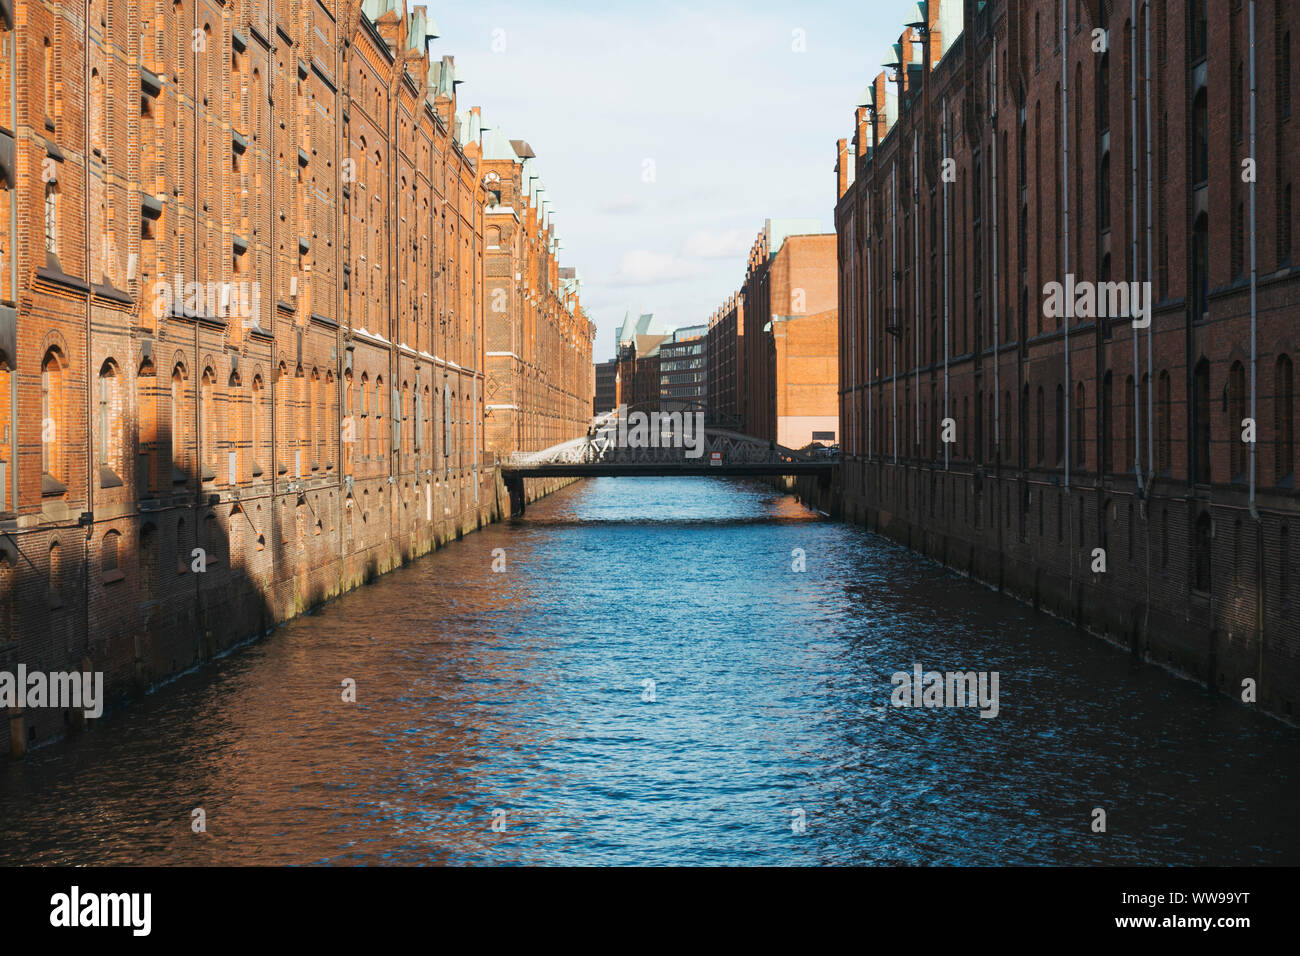 Looking down the canals with old warehouses on either side in the late afternoon in Hamburg, Germany Stock Photo